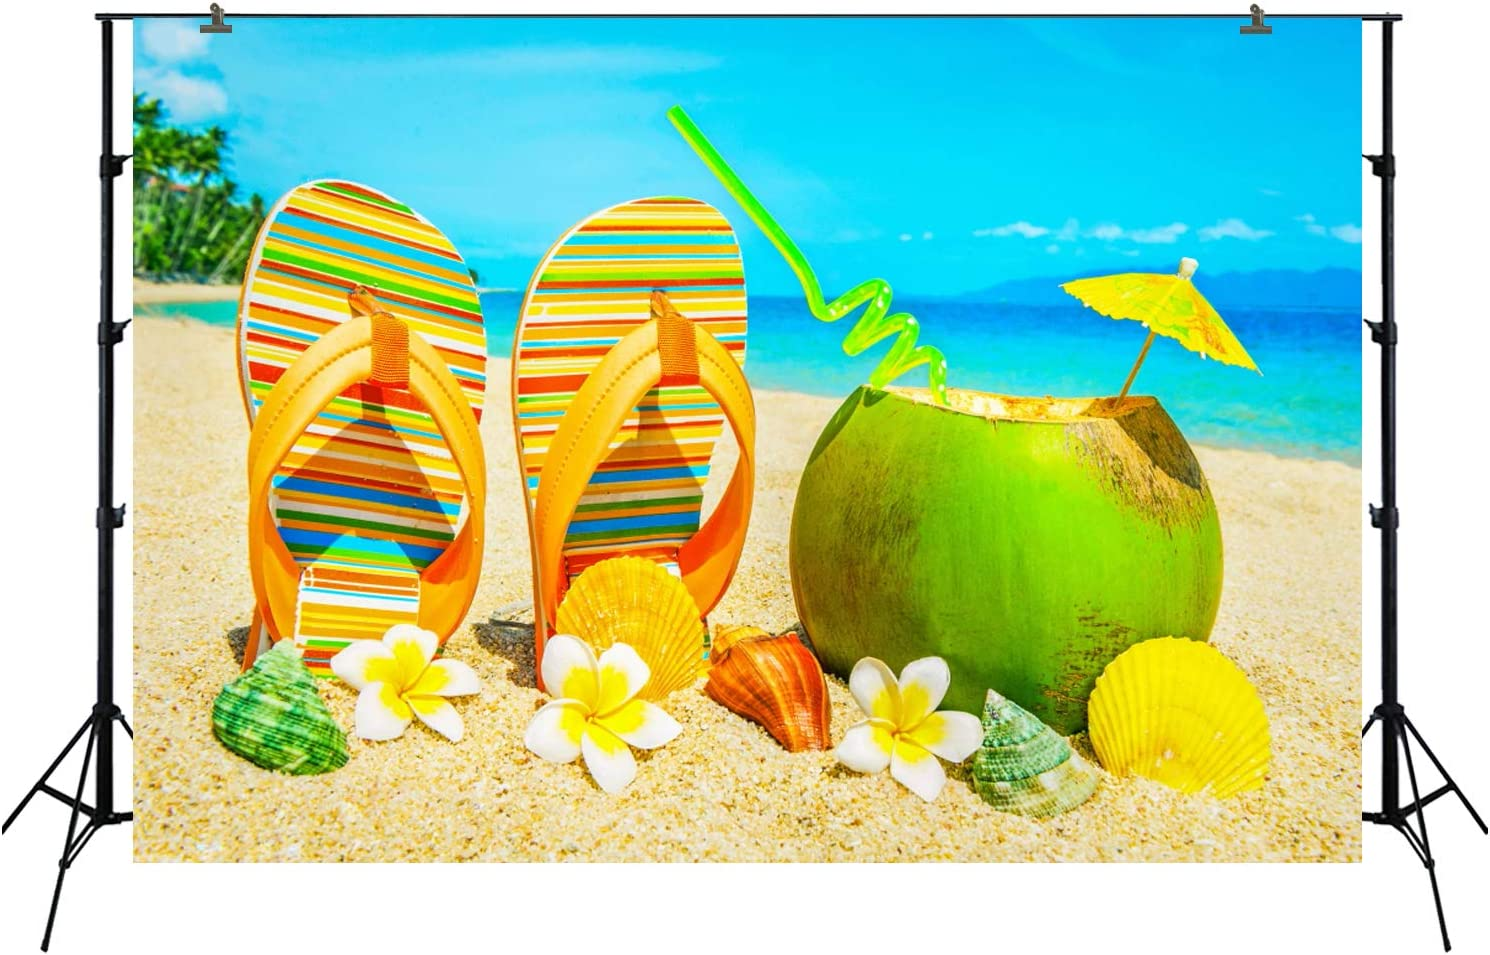 Backdrop for Baby Pictures Summer Themed Photography Background for Kids Birthday Party Photobooth Event Table Decoration Shower Props Surfing Theme and Beach FT-6238